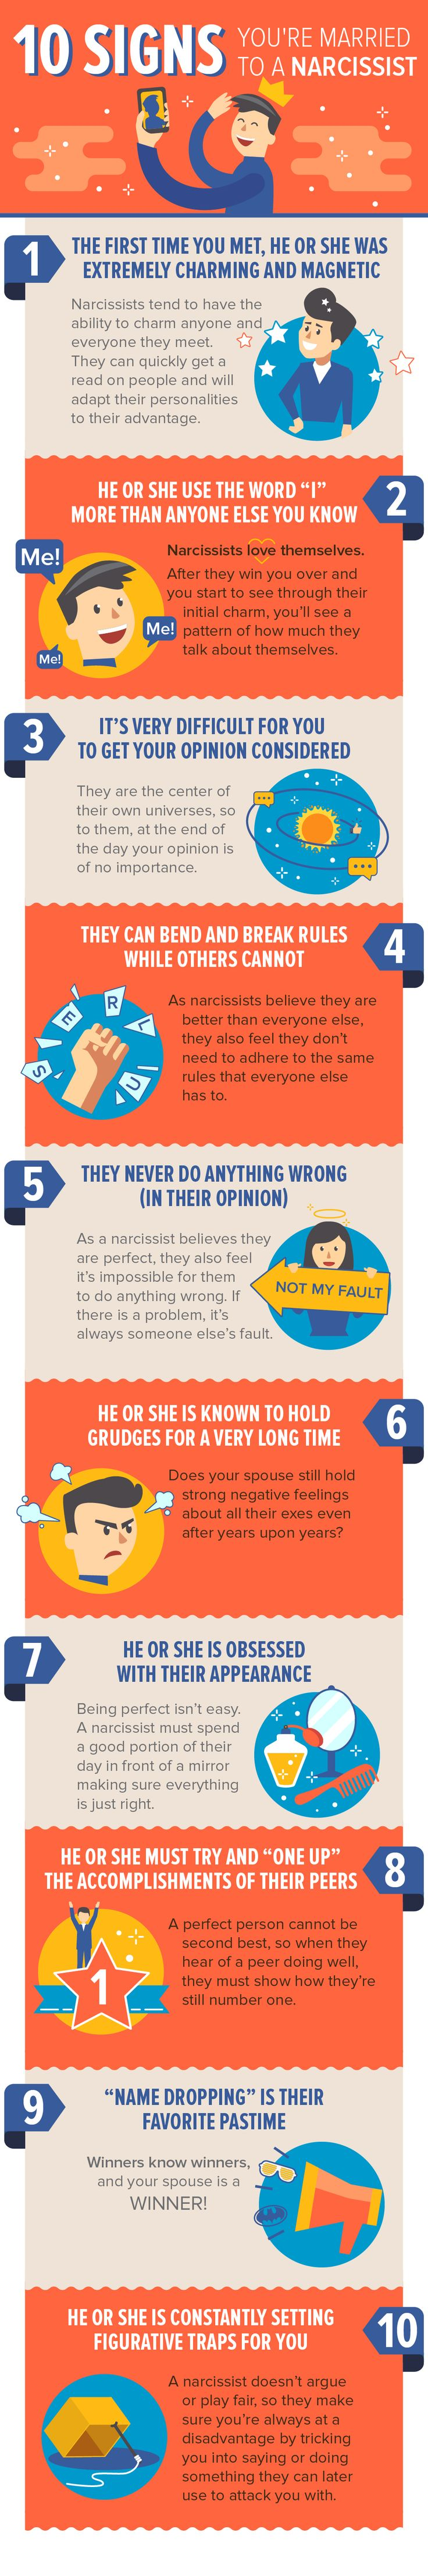 top 10 signs youre dating a psychopath